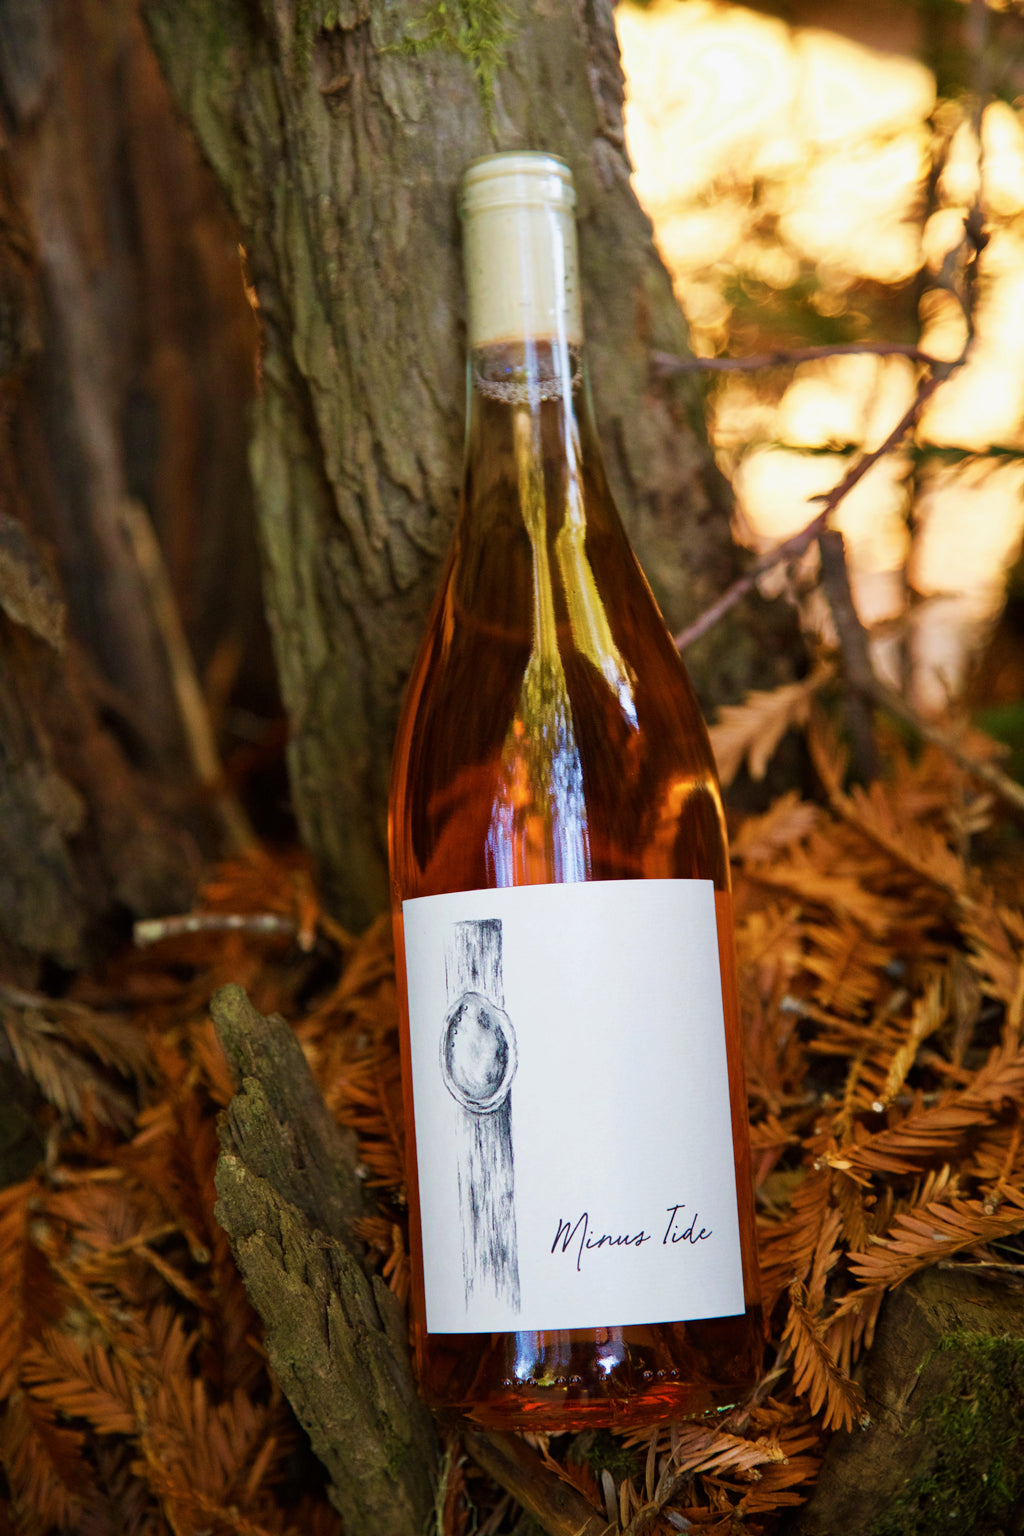 2019 Minus Tide Feliz Creek Vineyard Carignan Rosé